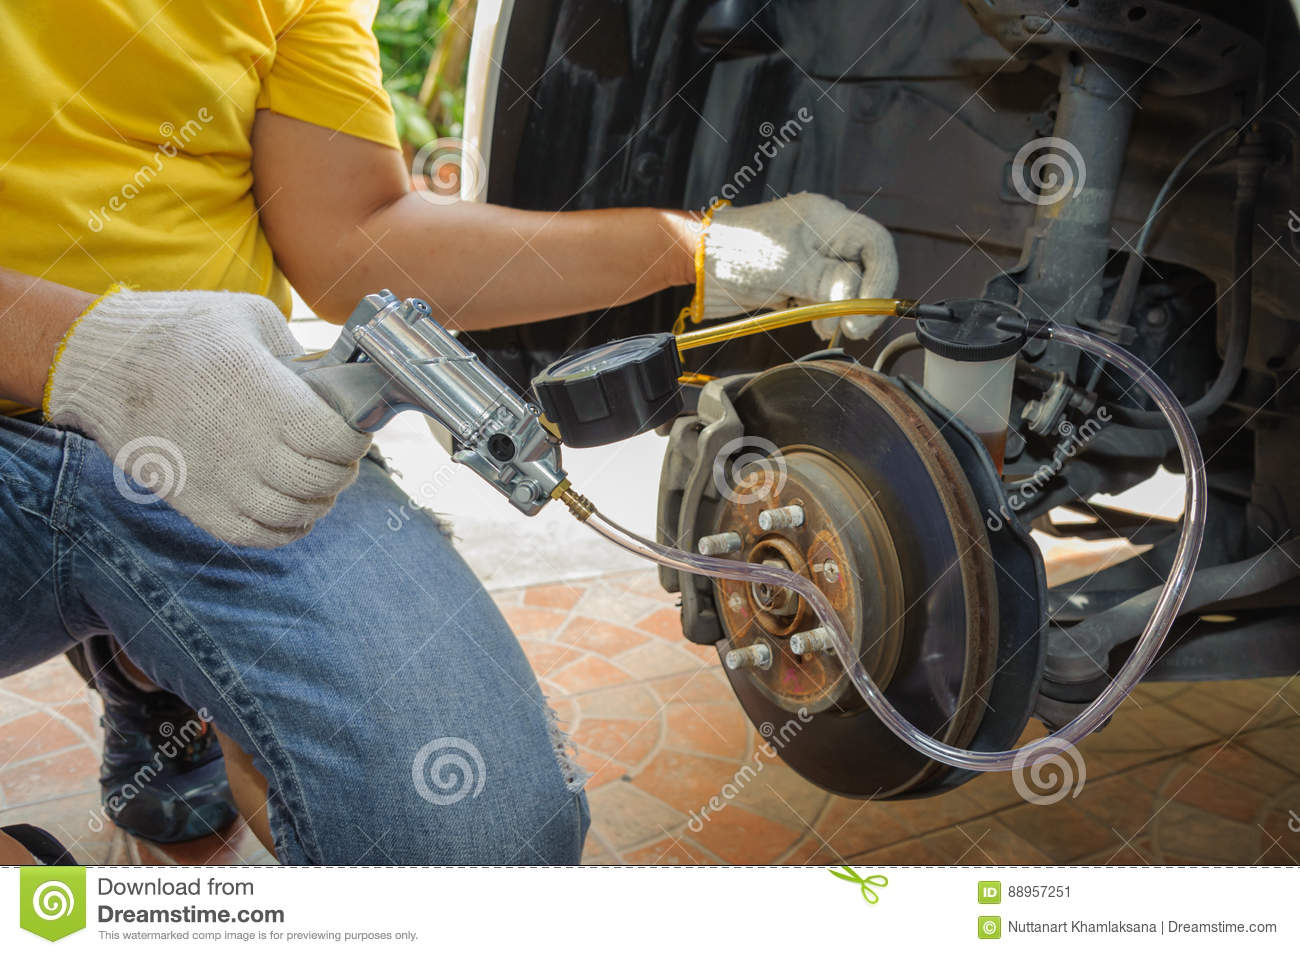 car mechanic bleed air out of brake system stock image image of failure disassembly 88957251. Black Bedroom Furniture Sets. Home Design Ideas